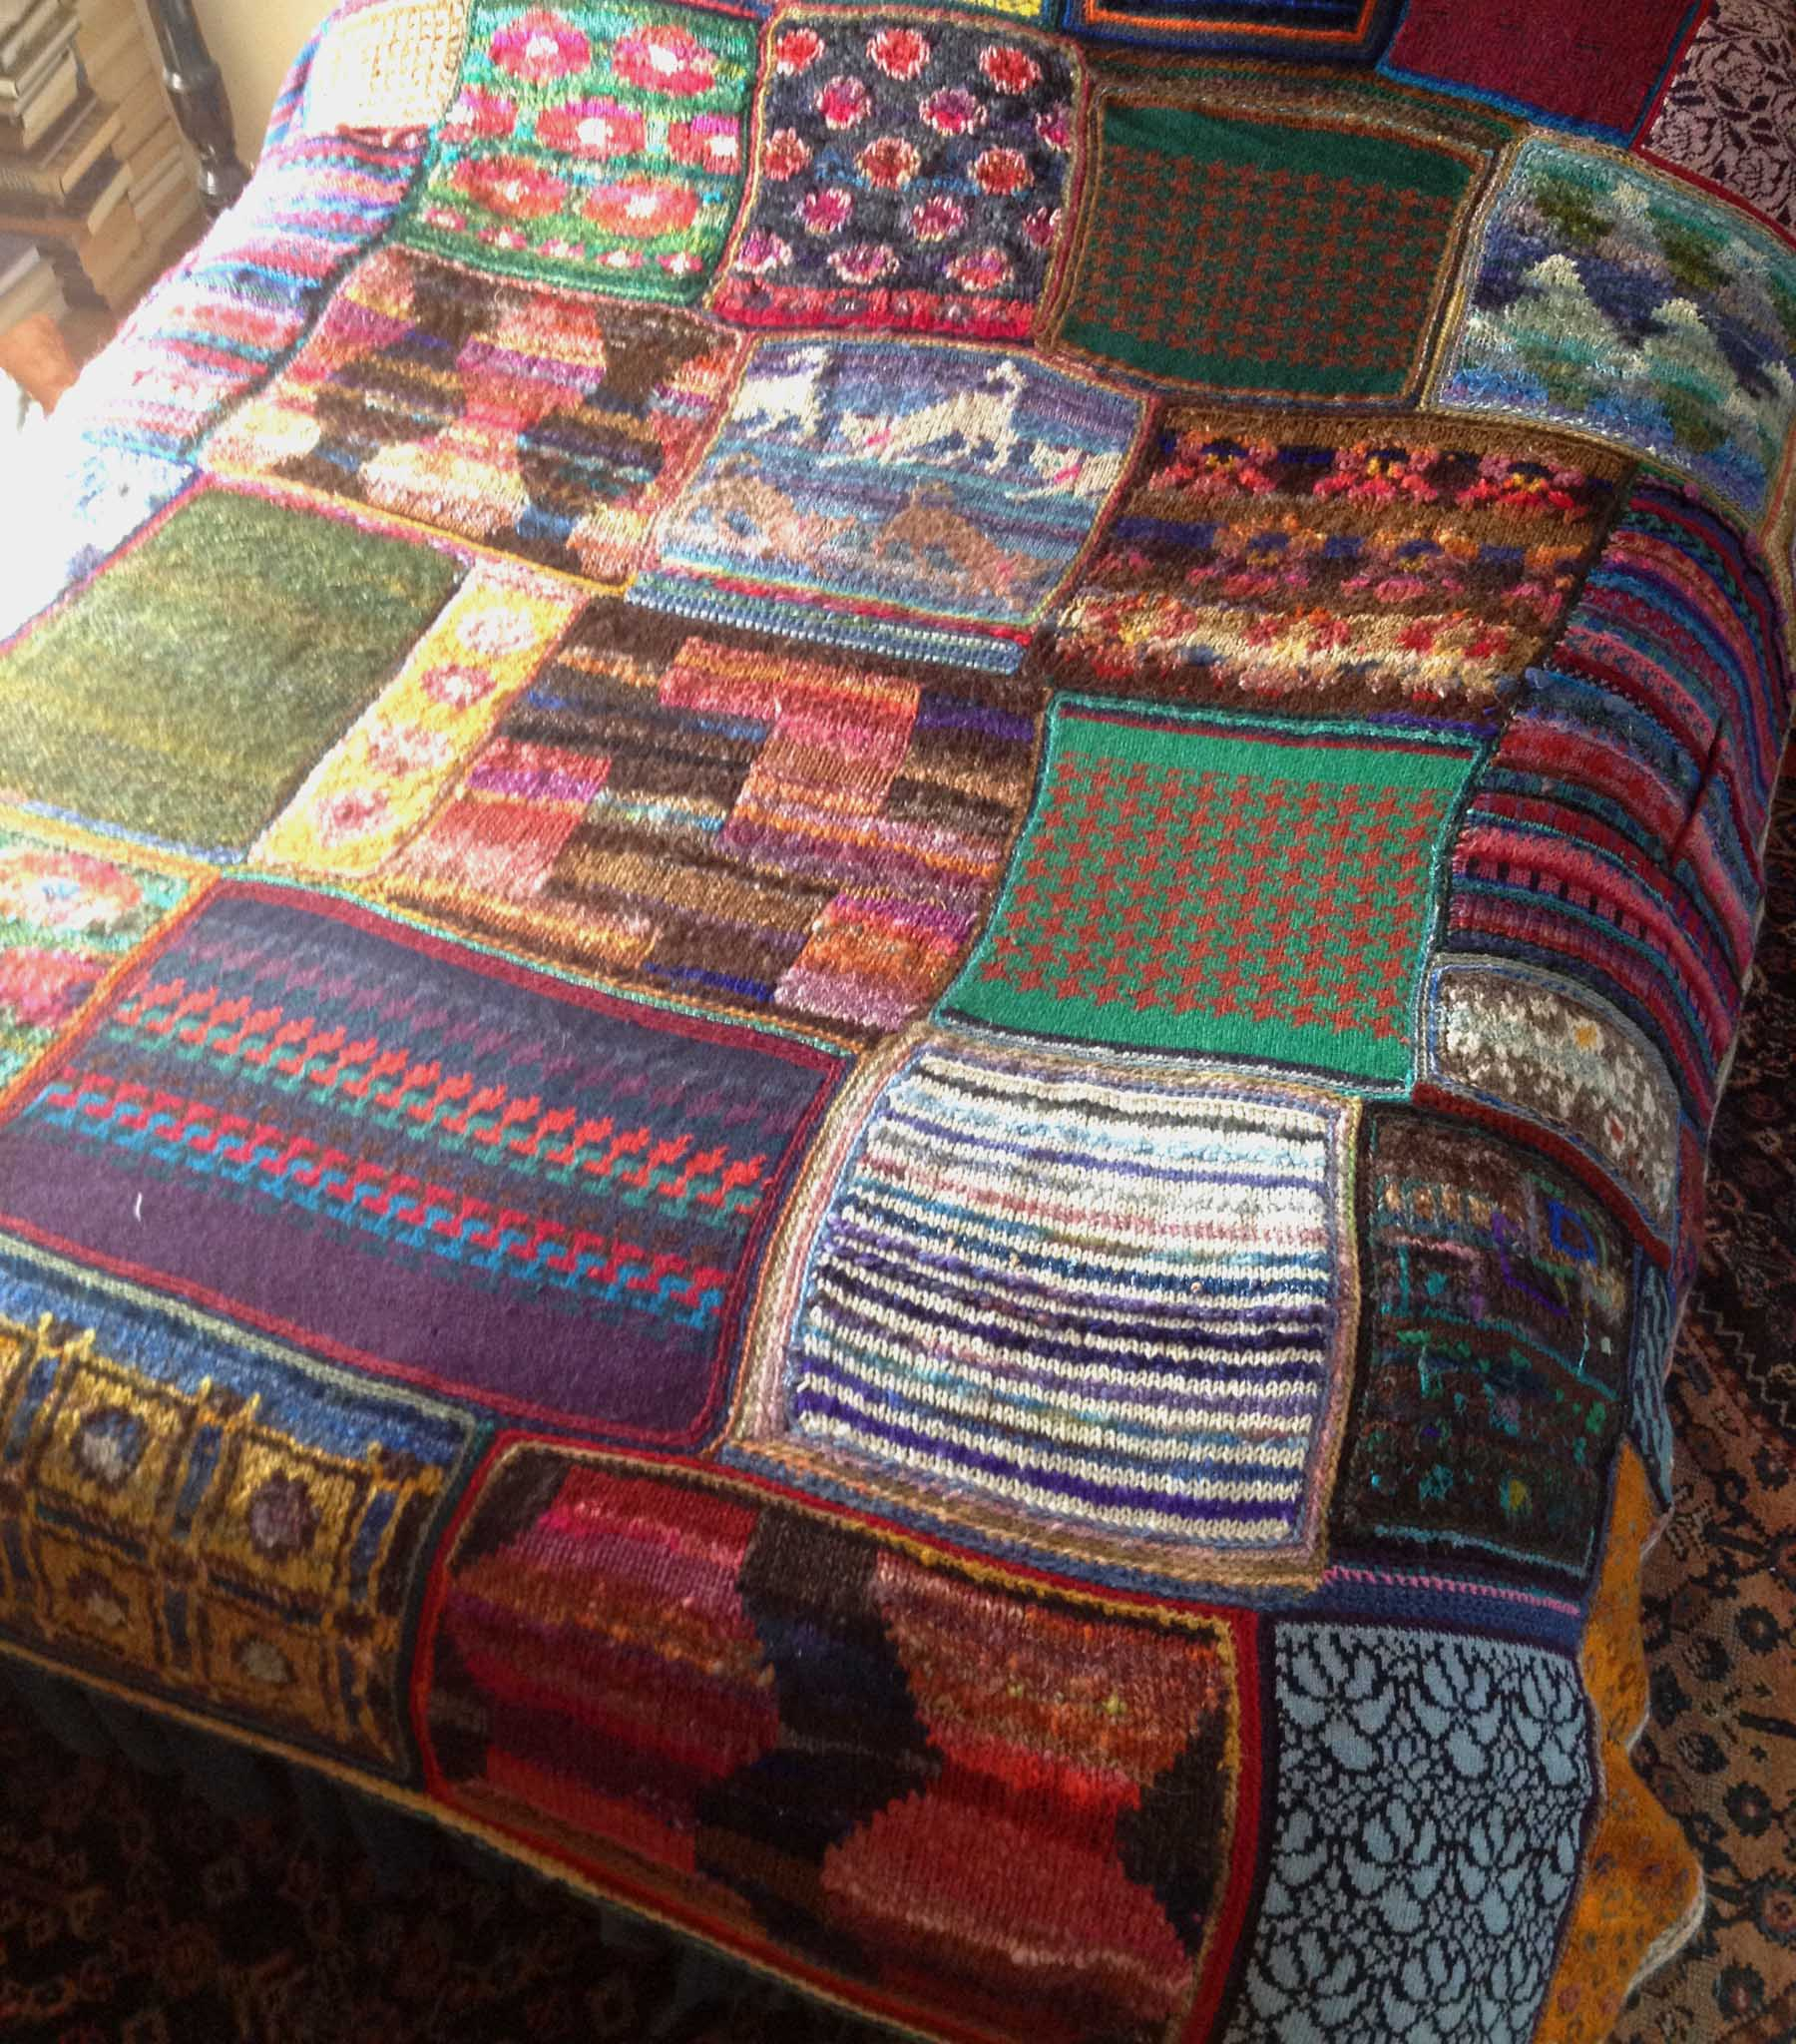 Knit Quilt Patterns : Image Gallery knitting a patchwork blanket